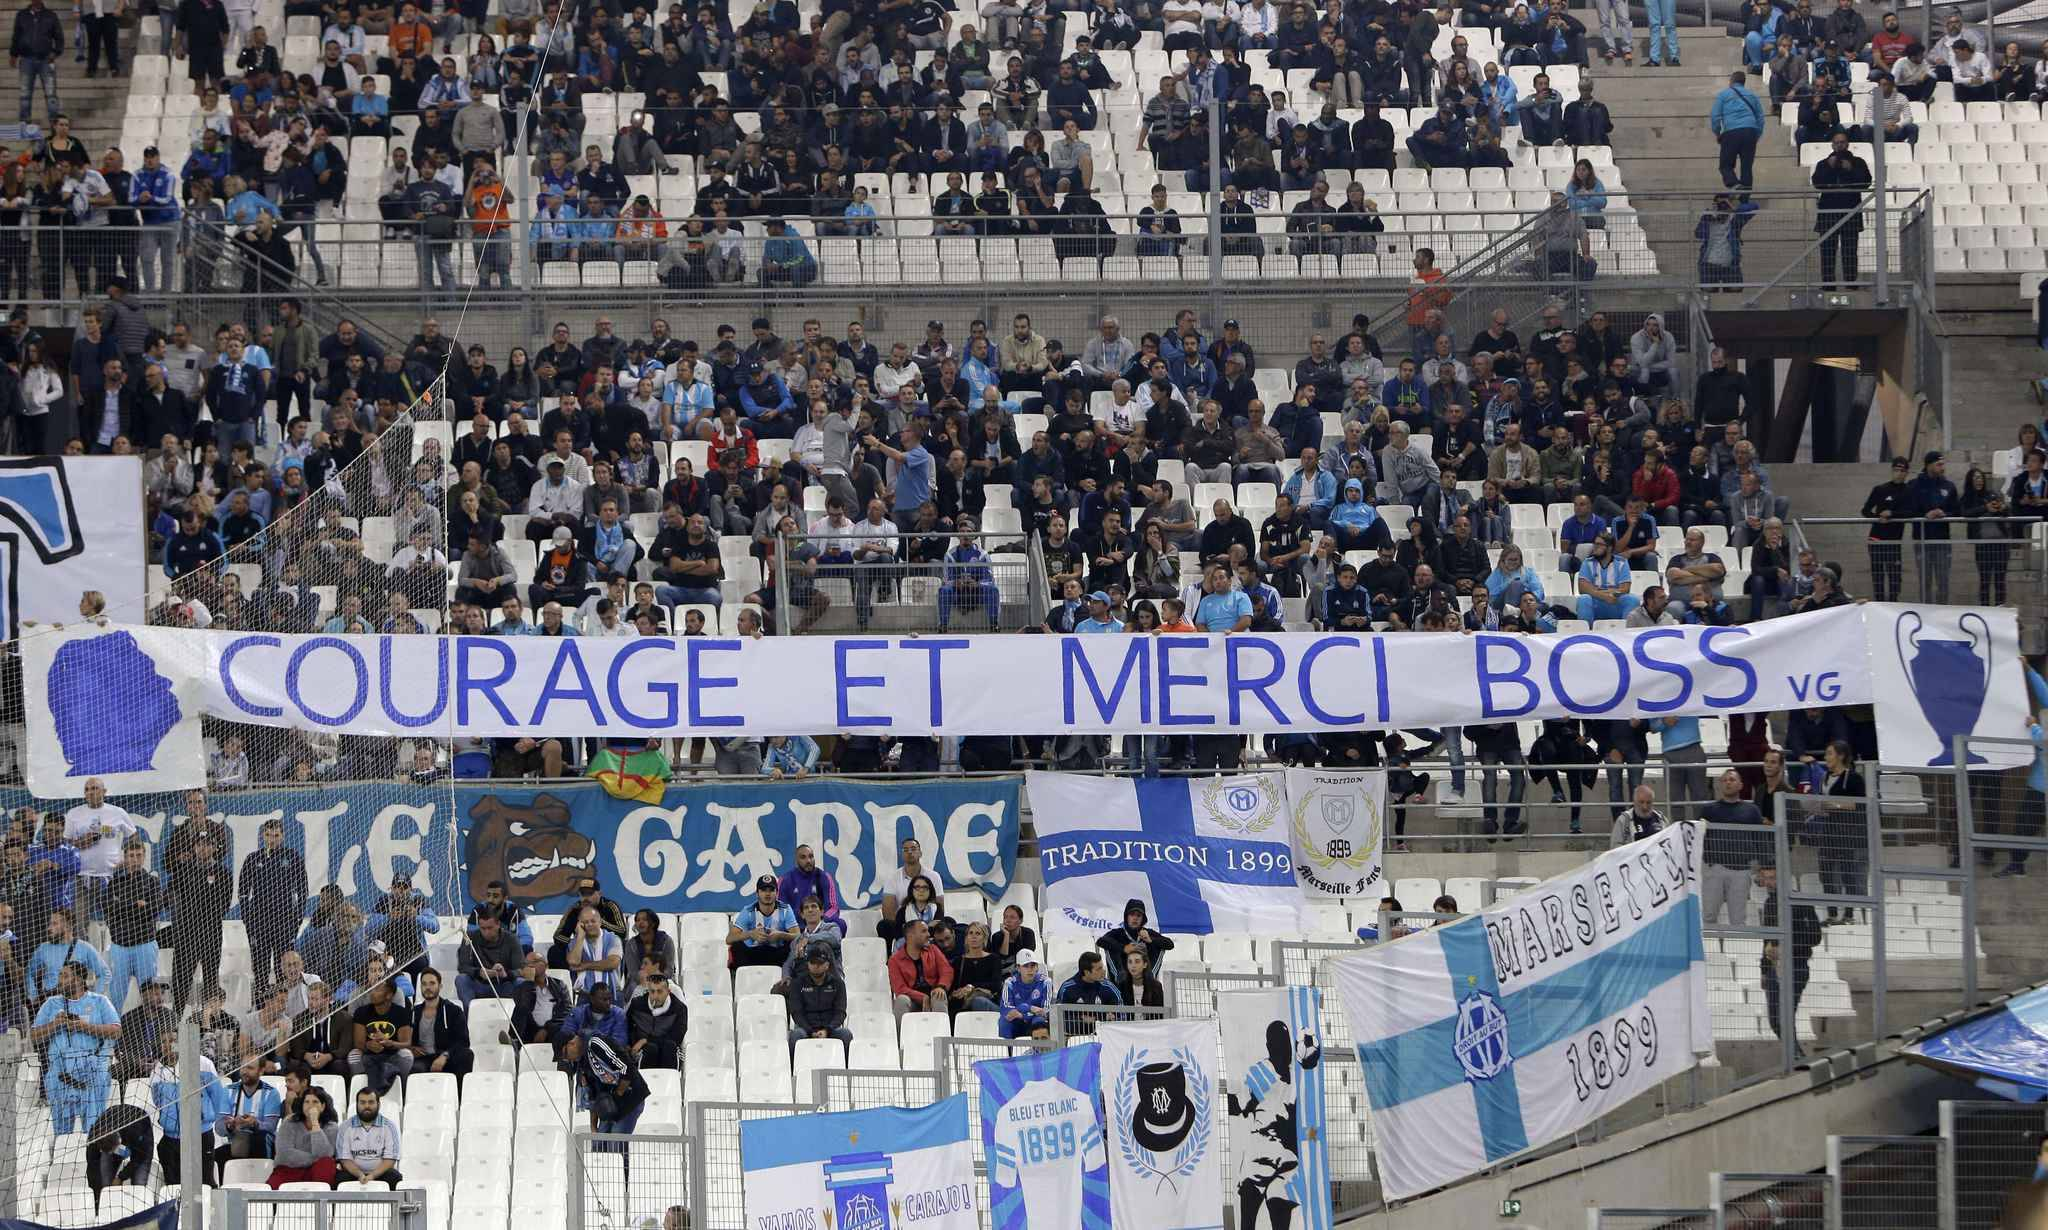 """South side supporters displayed banner reading """"Courage and thank you"""", in support for the former president Bernard Tapie who underwent a surgical operation, before the League One soccer match between Marseille and Toulouse, at the Velodrome stadium, in Marseille, southern France, Sunday, Sept. 24, 2017."""